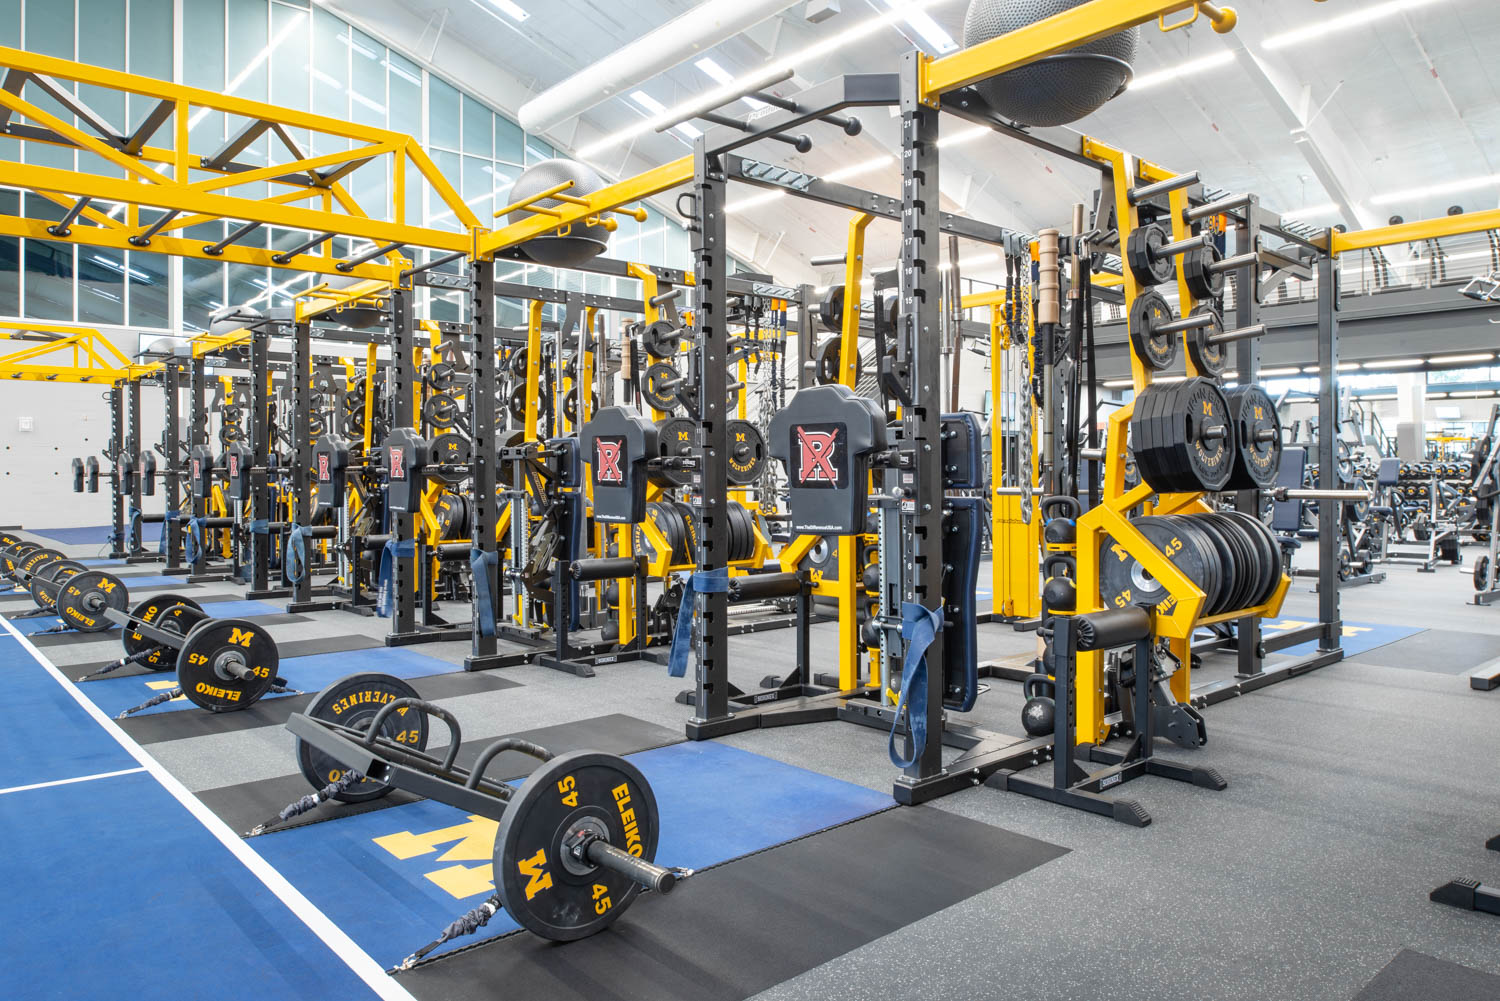 Dual Rack XL at University of Michigan football weight room